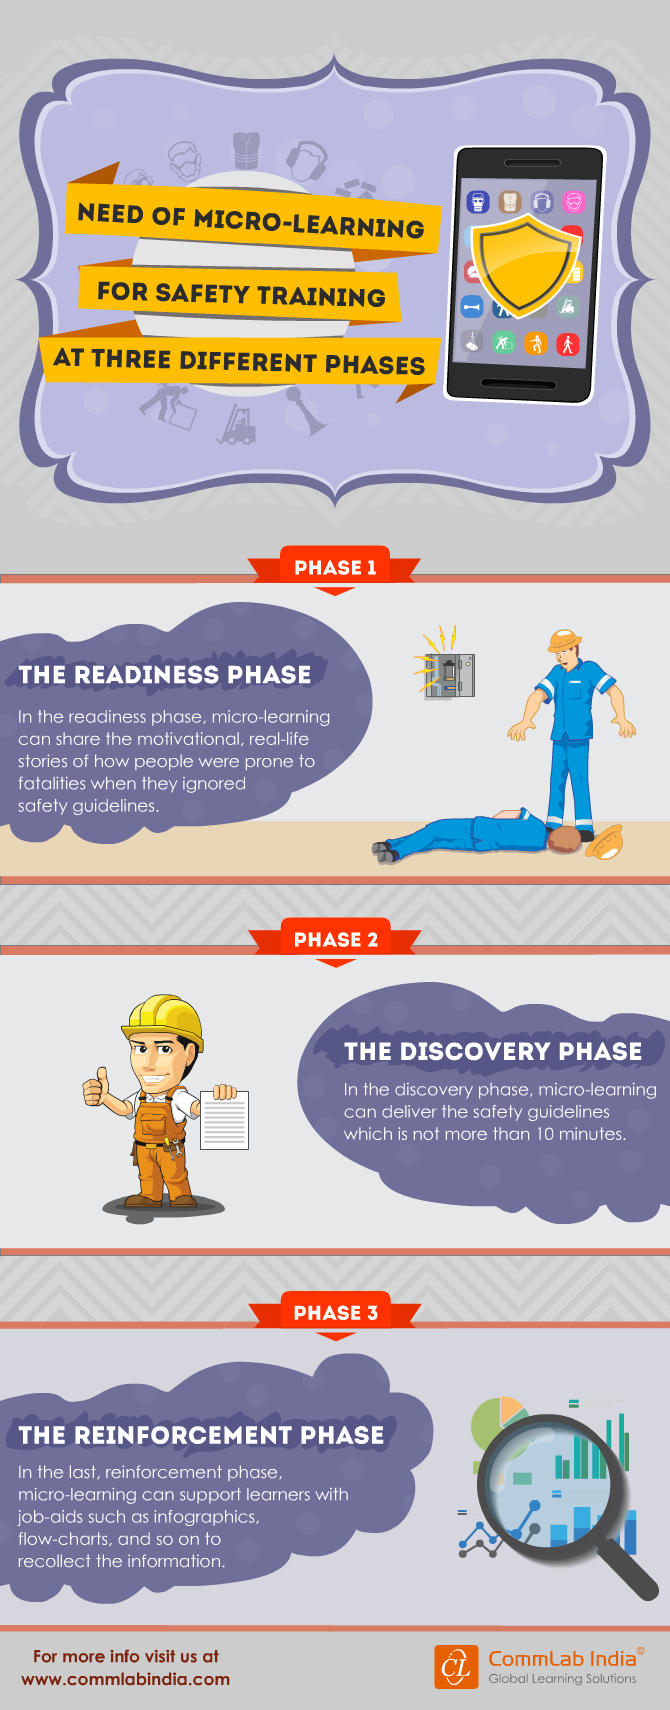 Microlearning for Safety Training in Three Different Phases [Infographic]